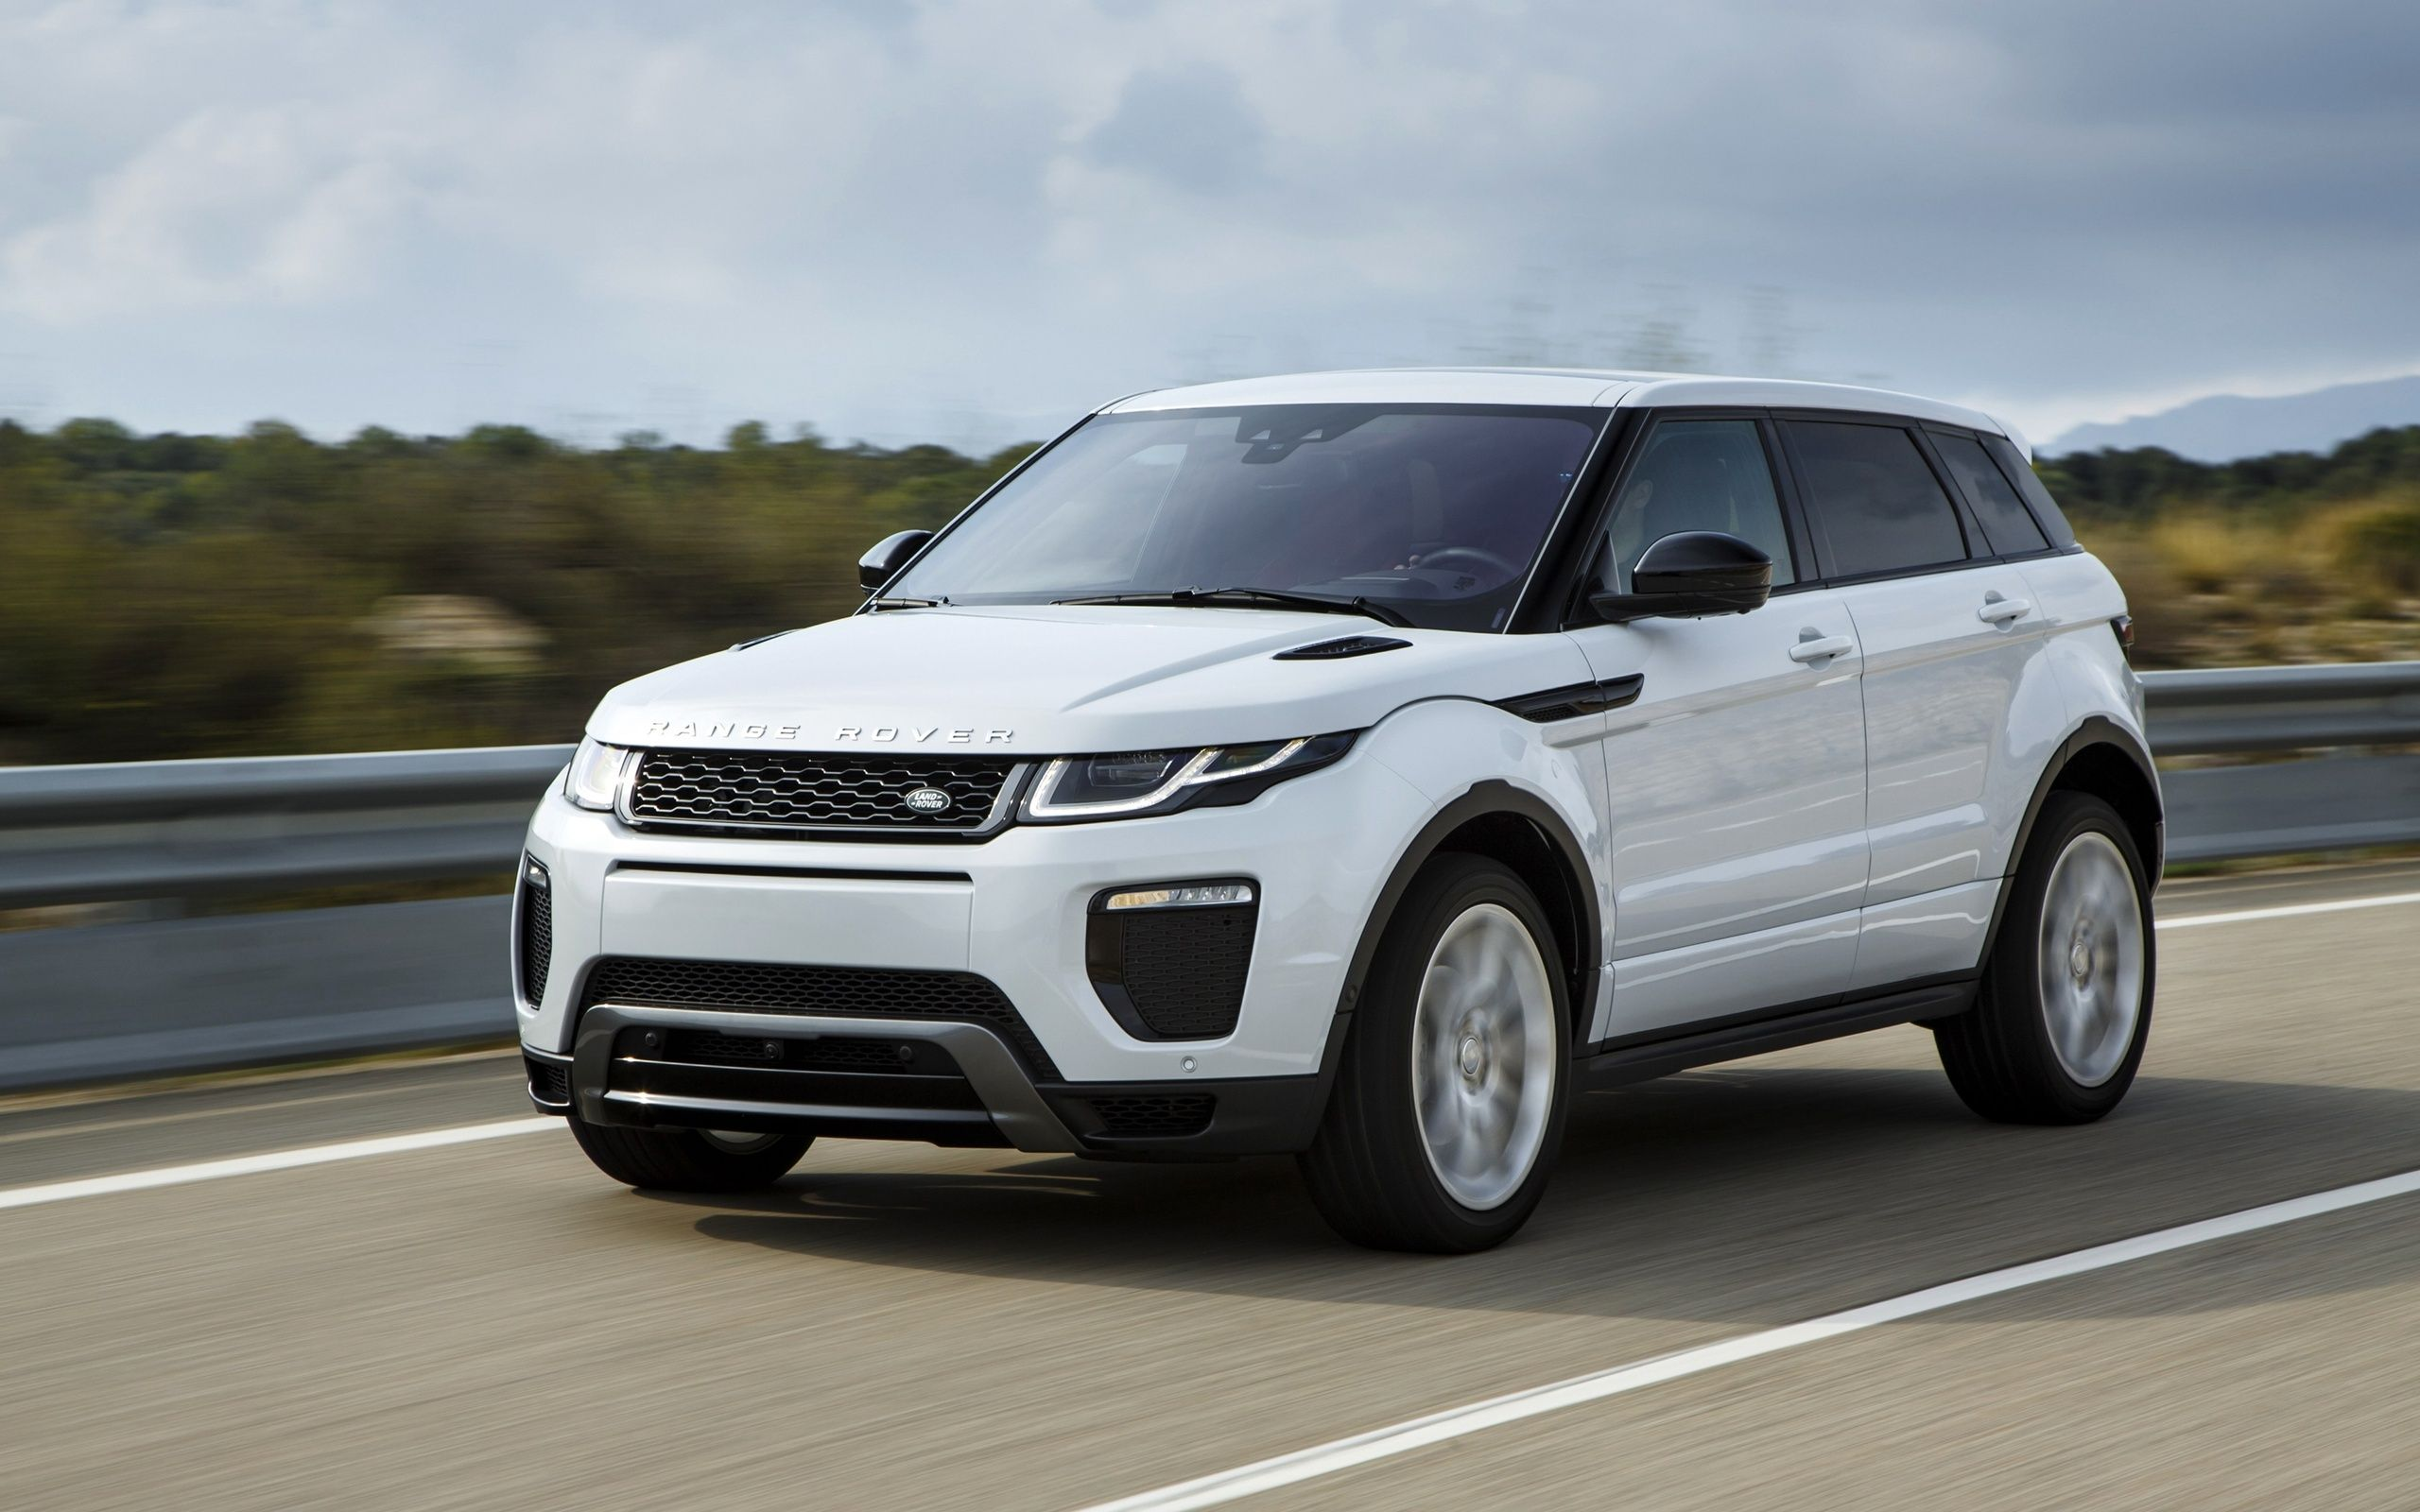 2017 Range Rover Evoque Hse Dynamic The Version Has Actually Got Some Most Recent Technology That